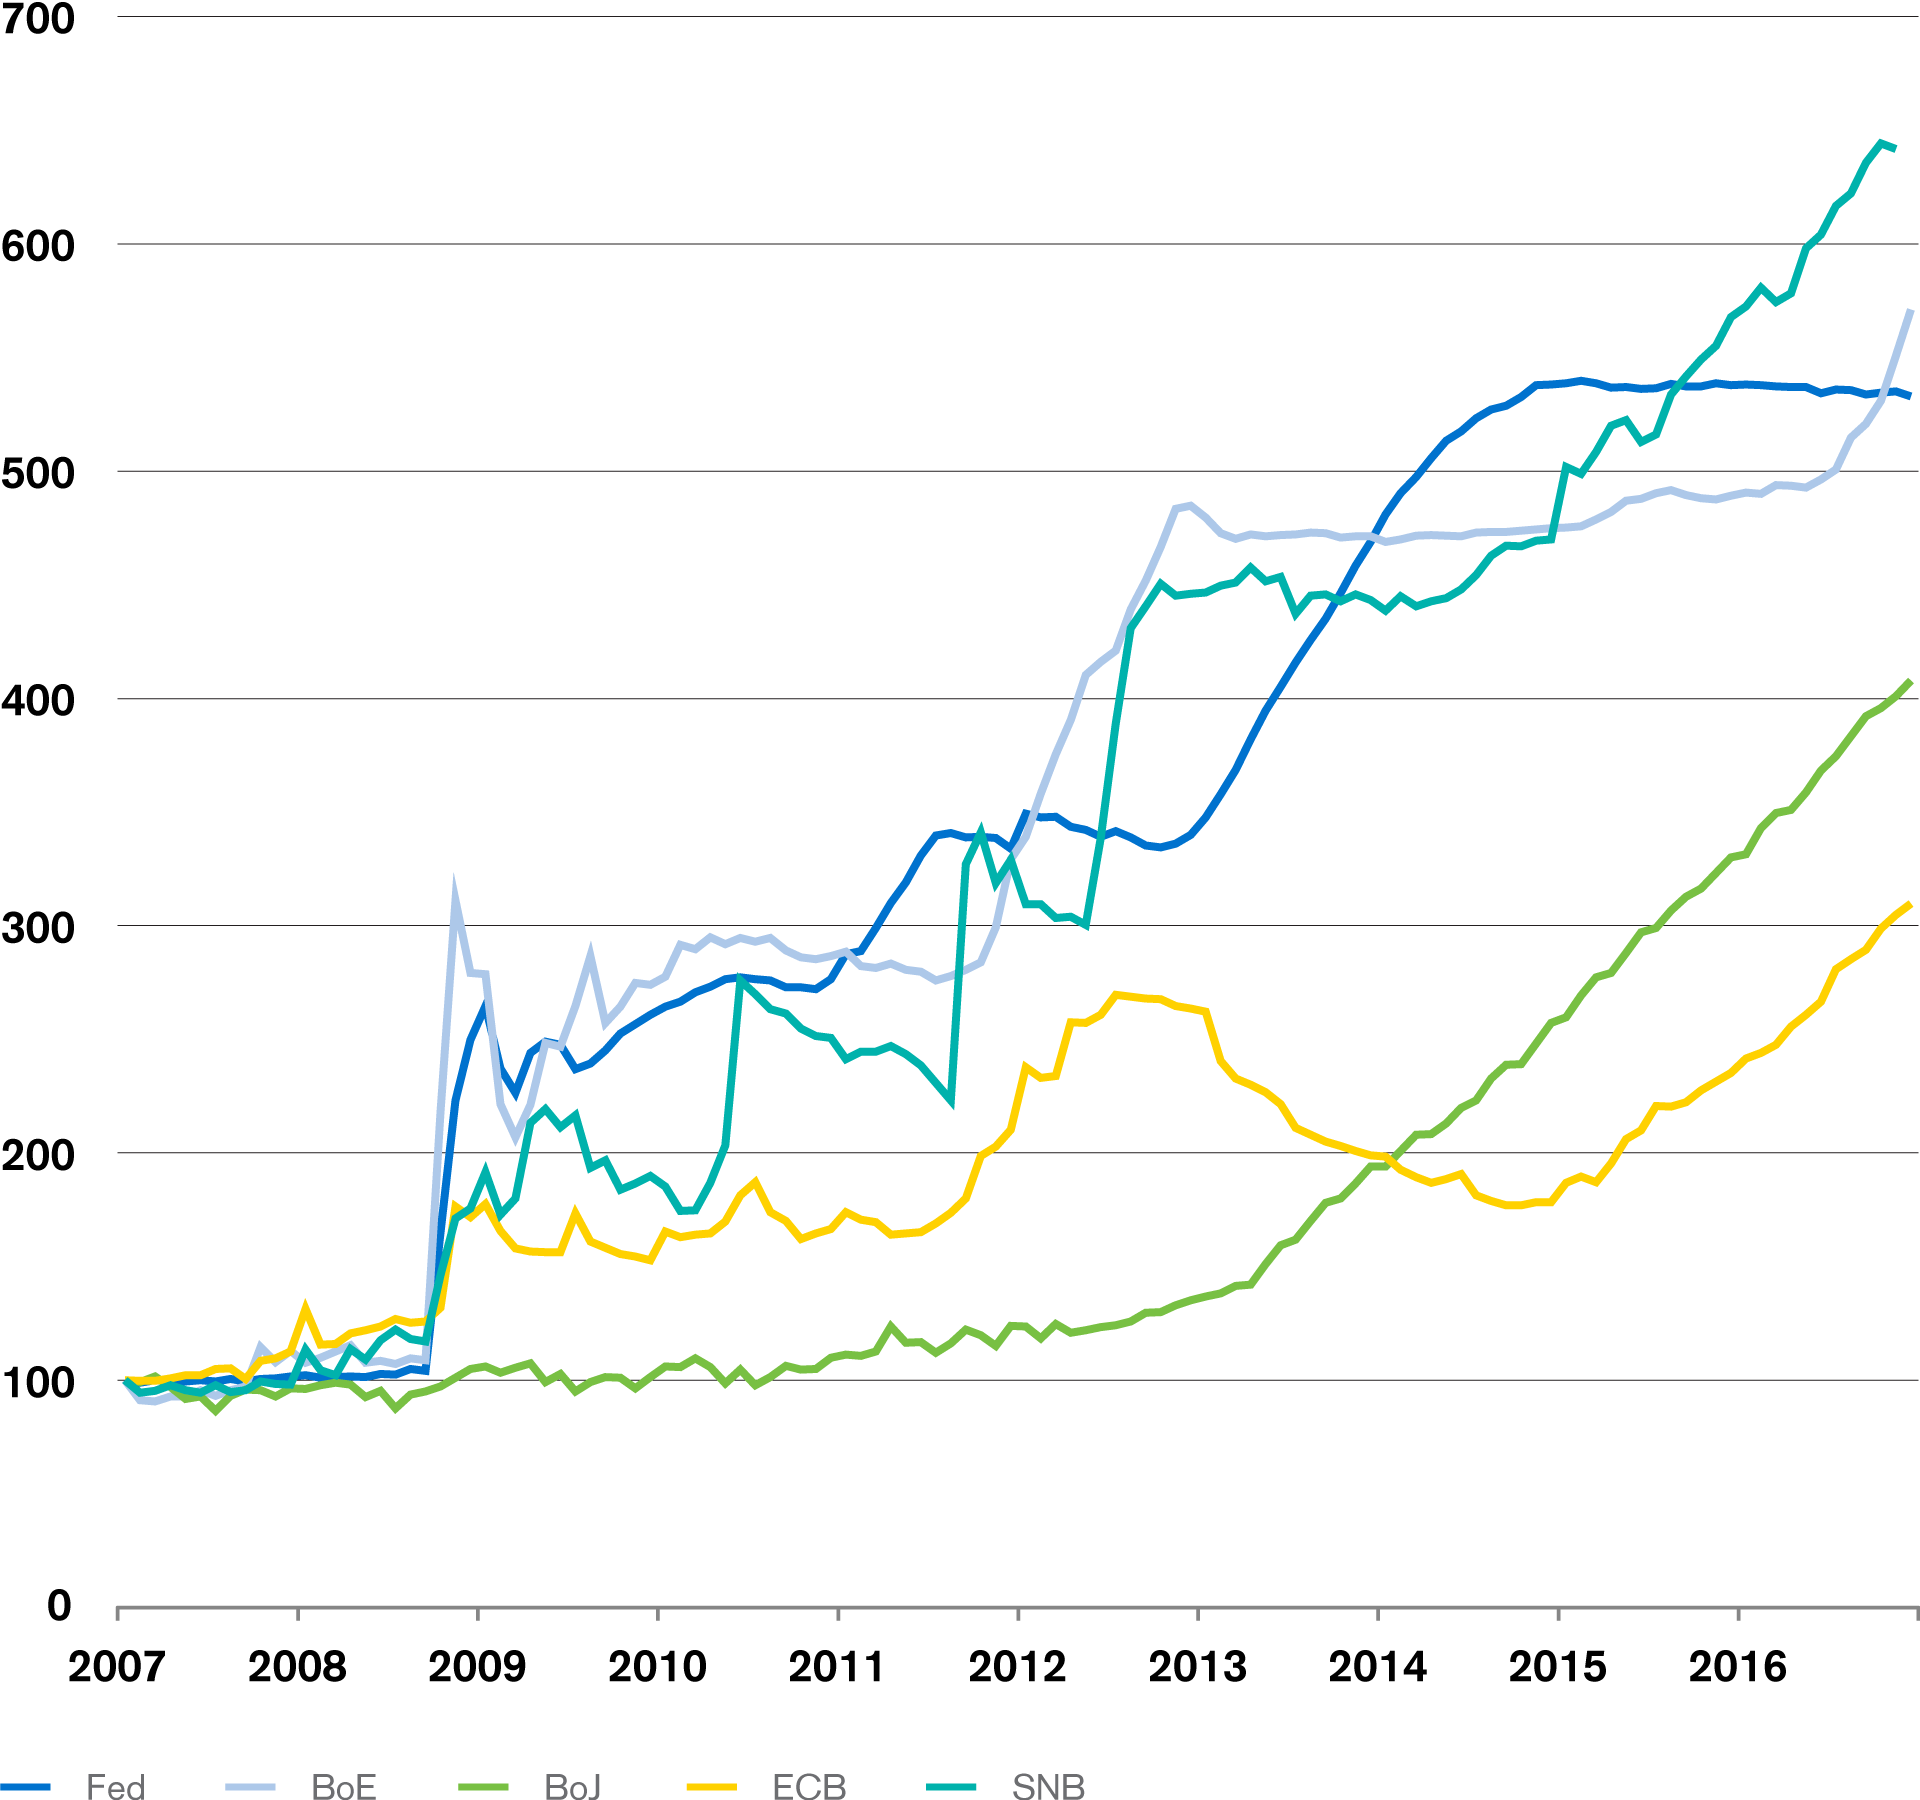 Evolution of Central Banks Balance Sheets